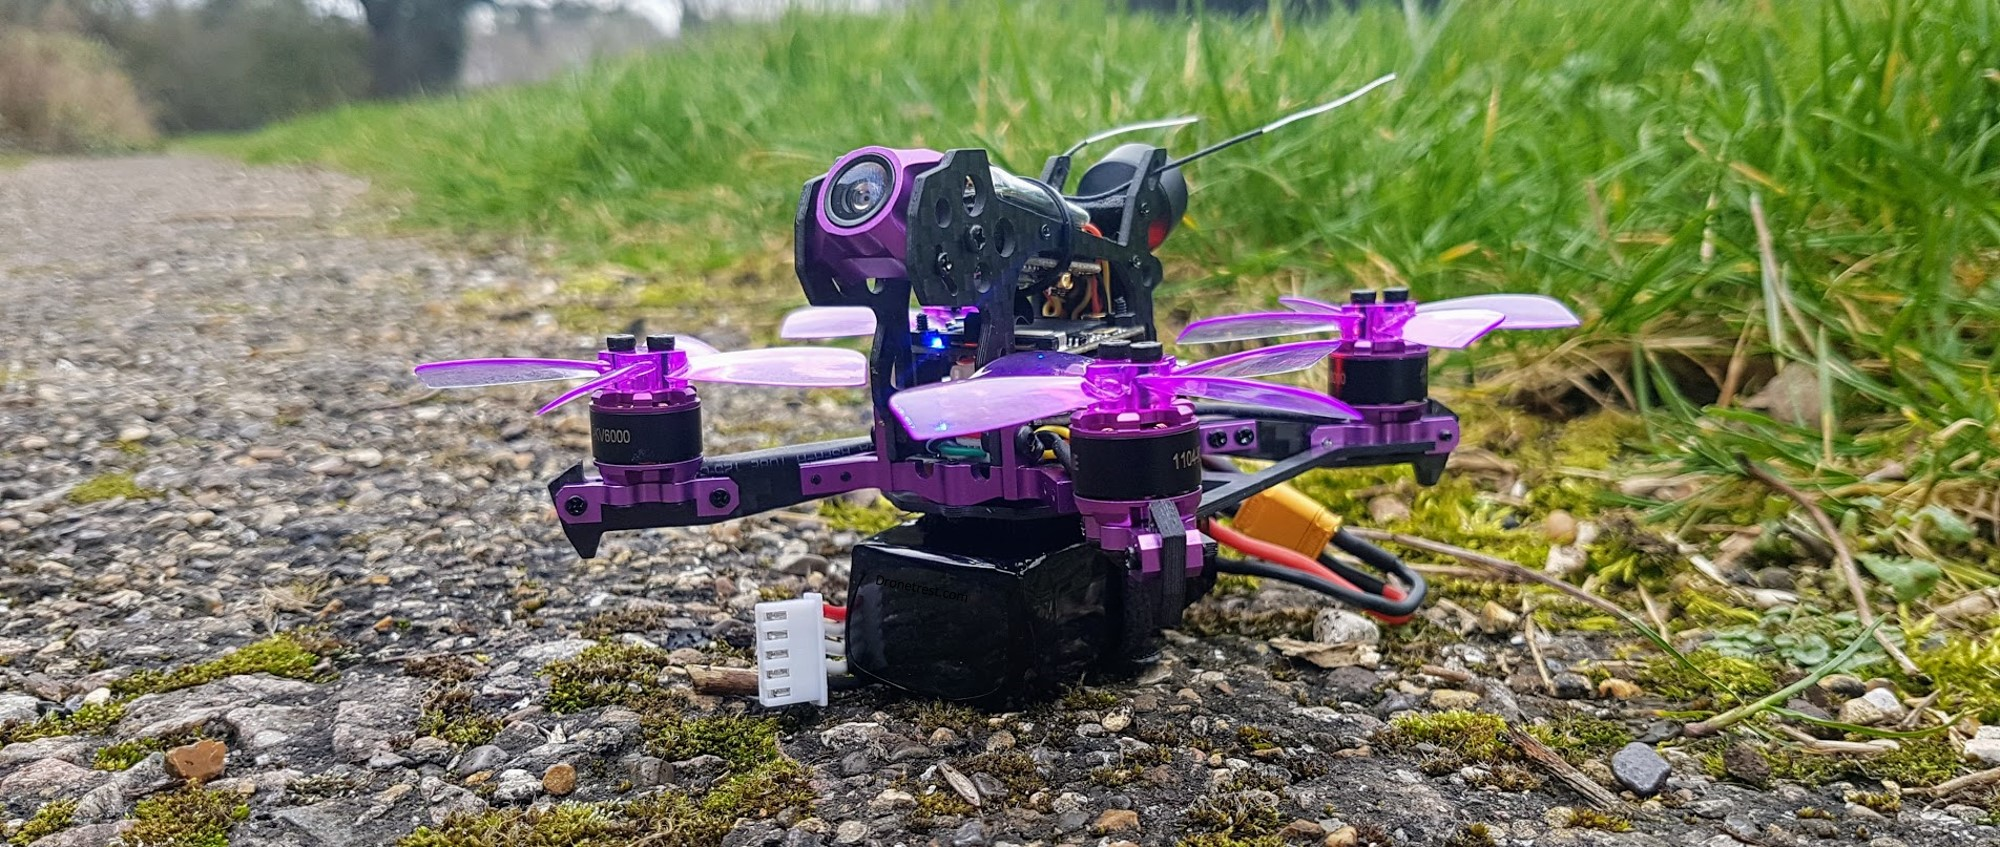 Eachine-105S-before-takeoff